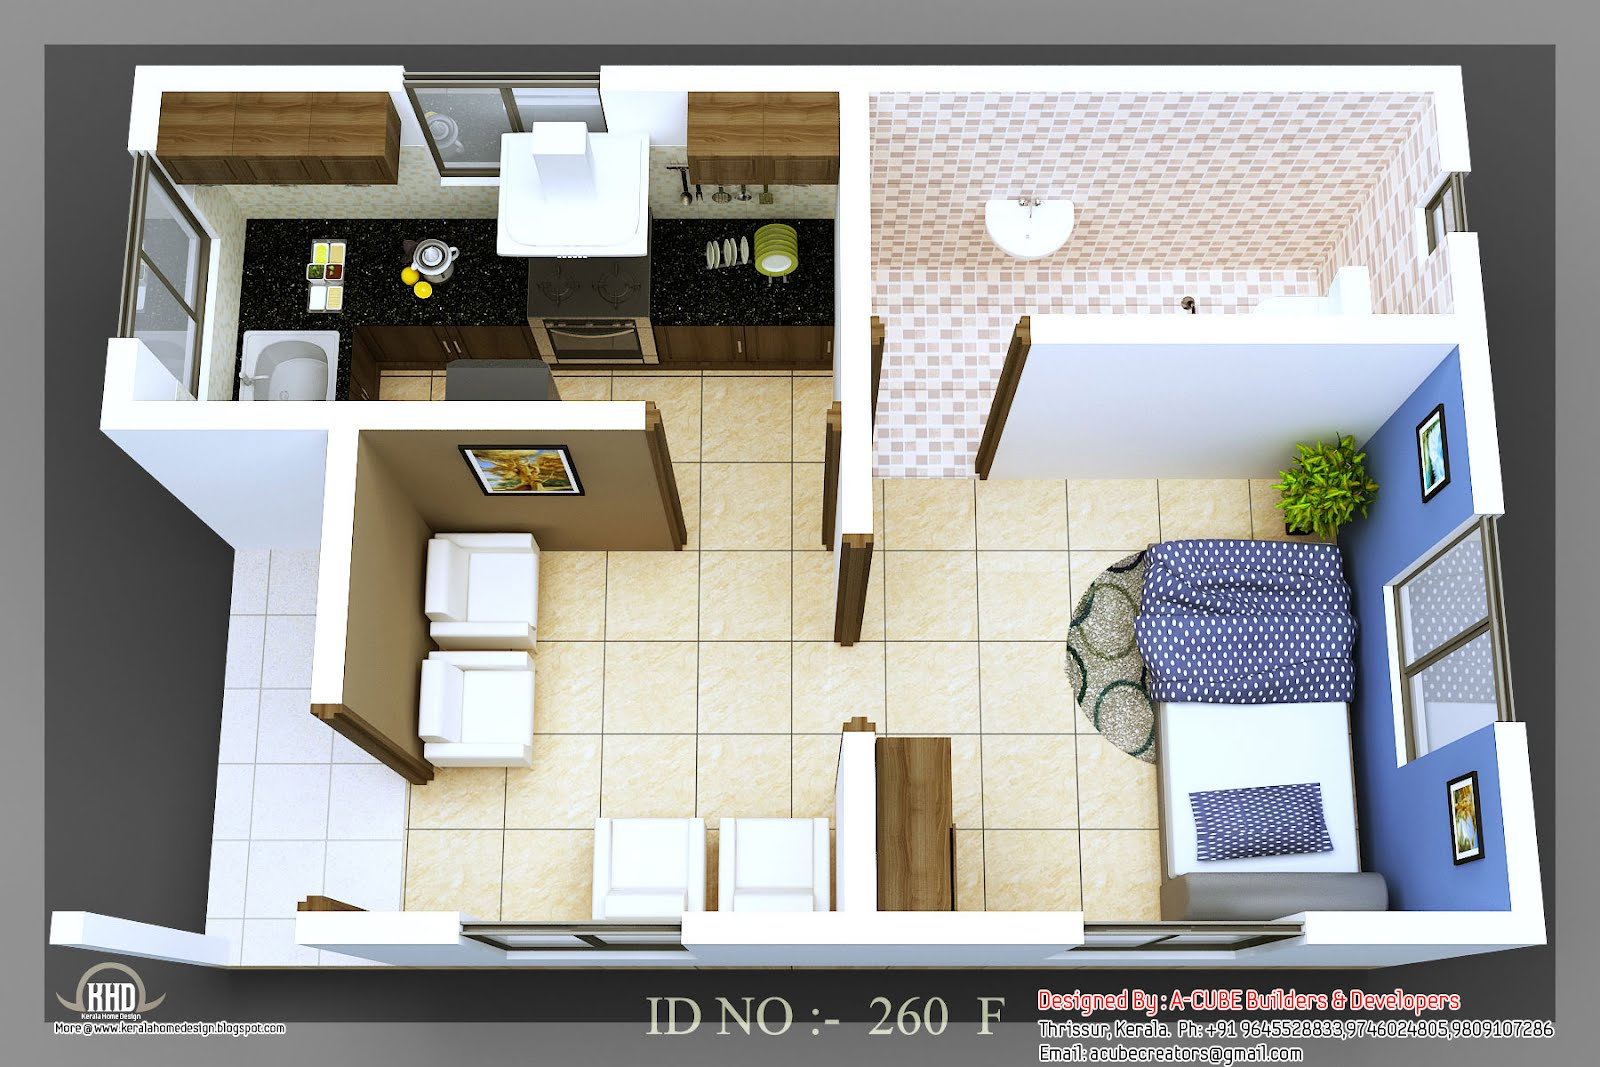 3d isometric views of small house plans kerala home Plans home